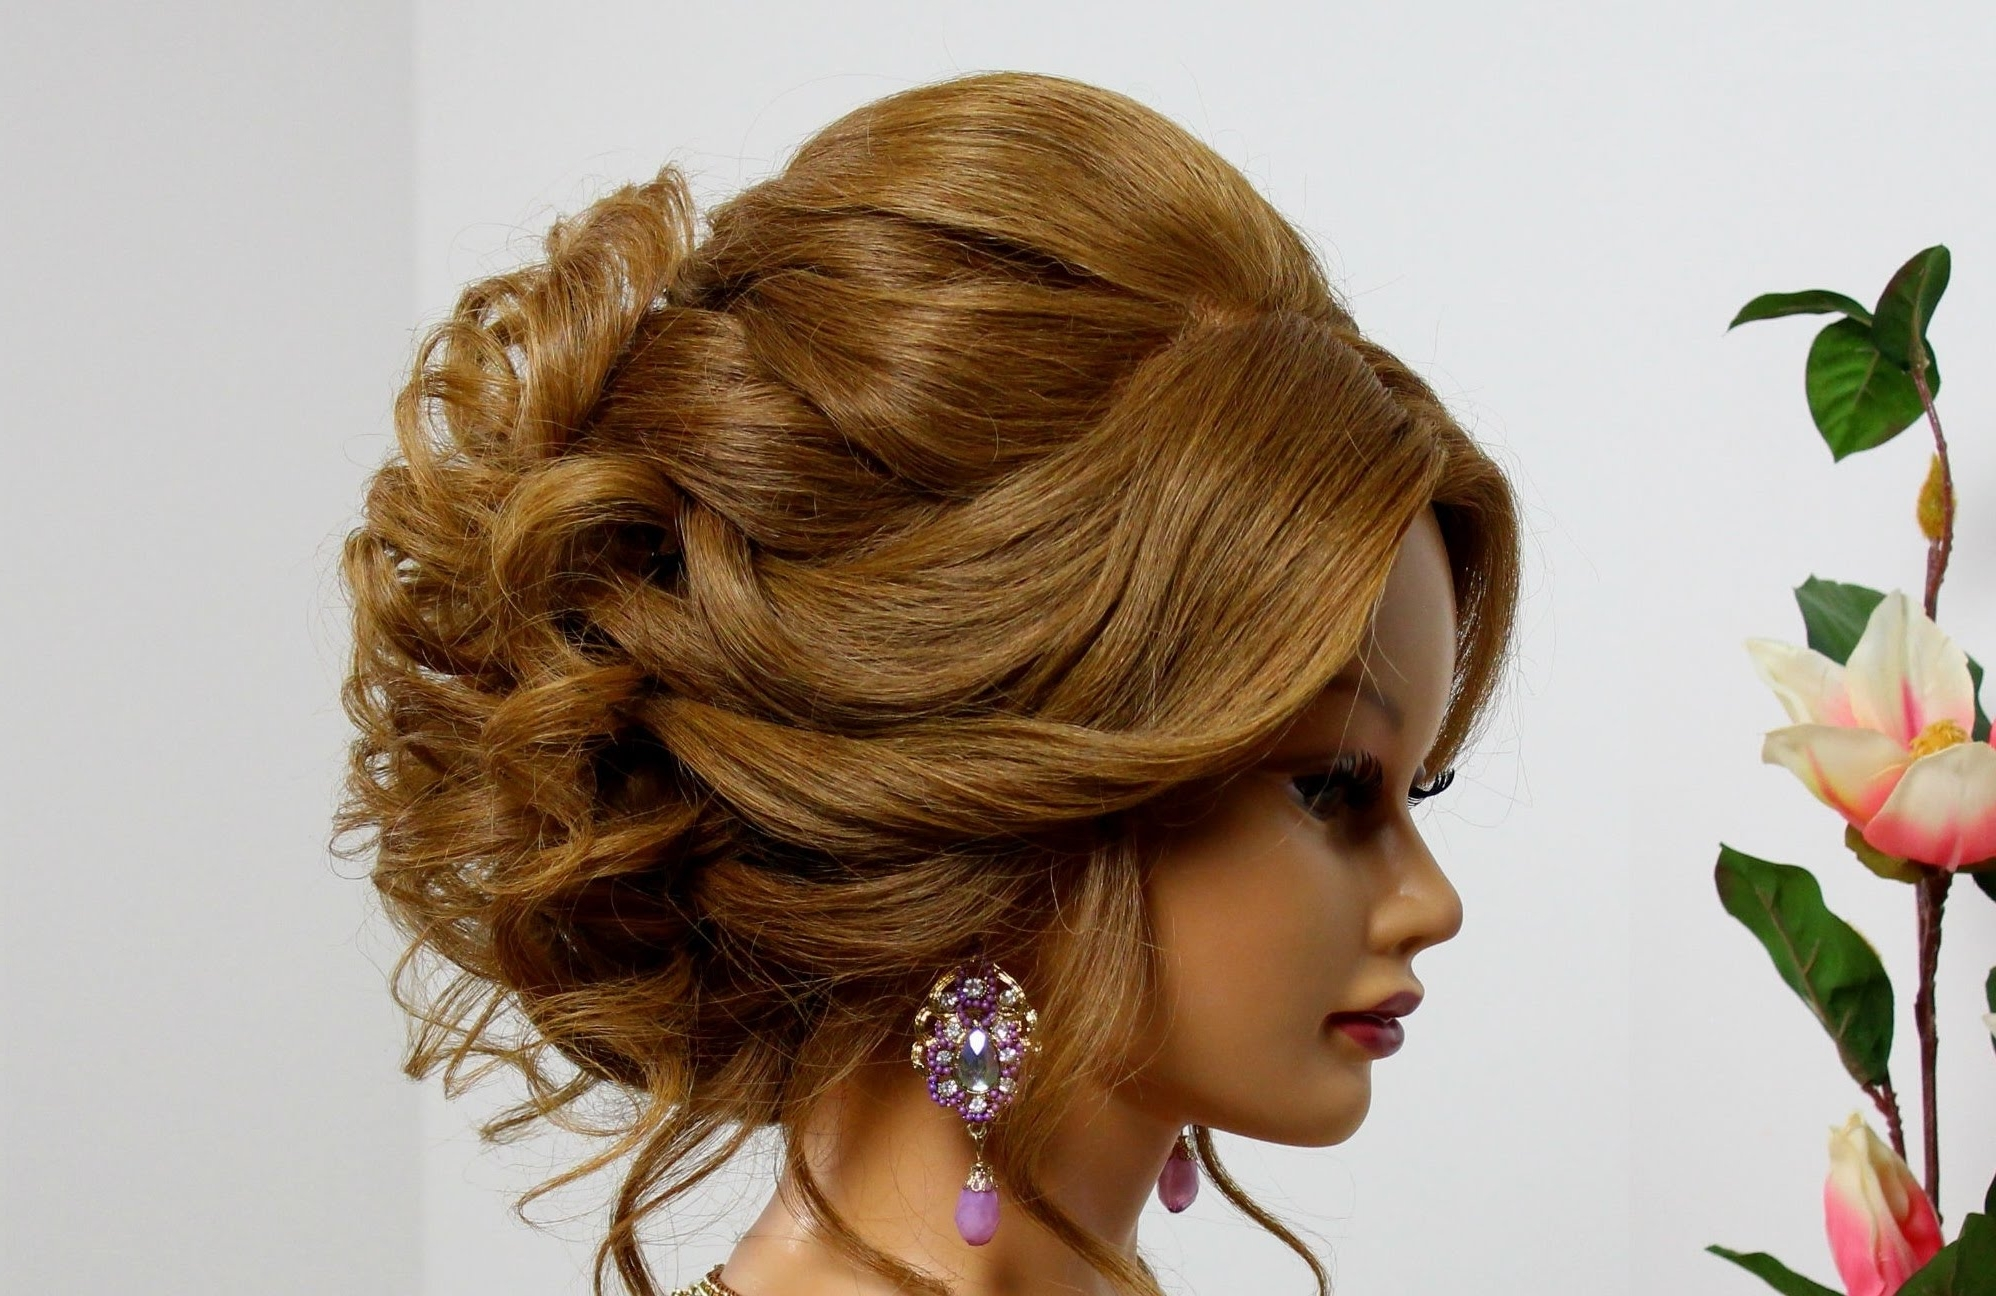 Prom Hairstyles Updos For Medium Hair – Hairstyle For Women & Man In Formal Updo Hairstyles For Medium Hair (View 13 of 15)